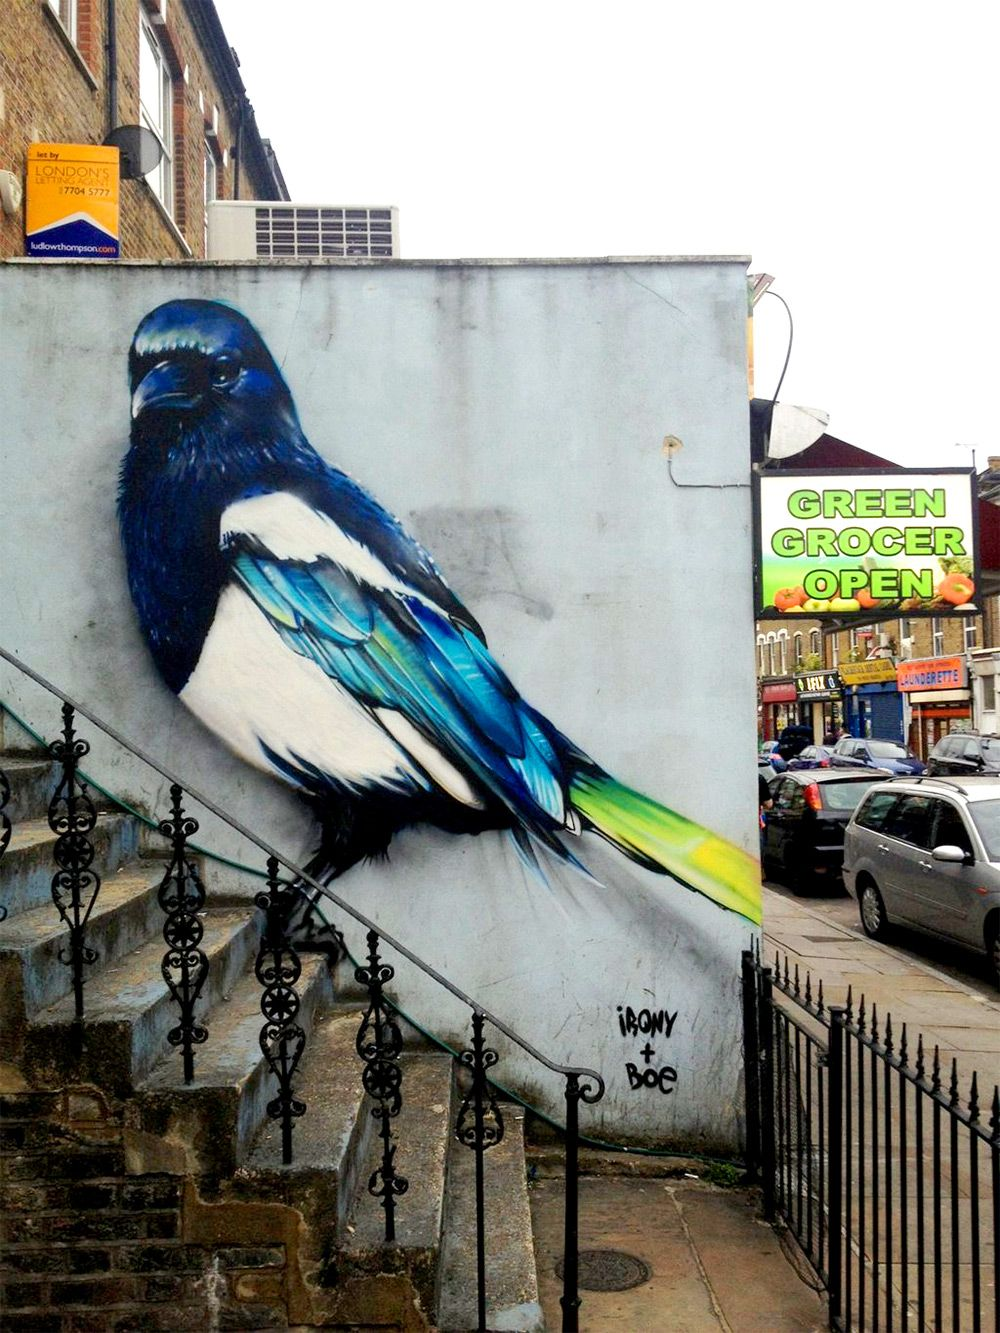 Towering Animals by \'Irony & Boe\' Stalk the Streets of London ...